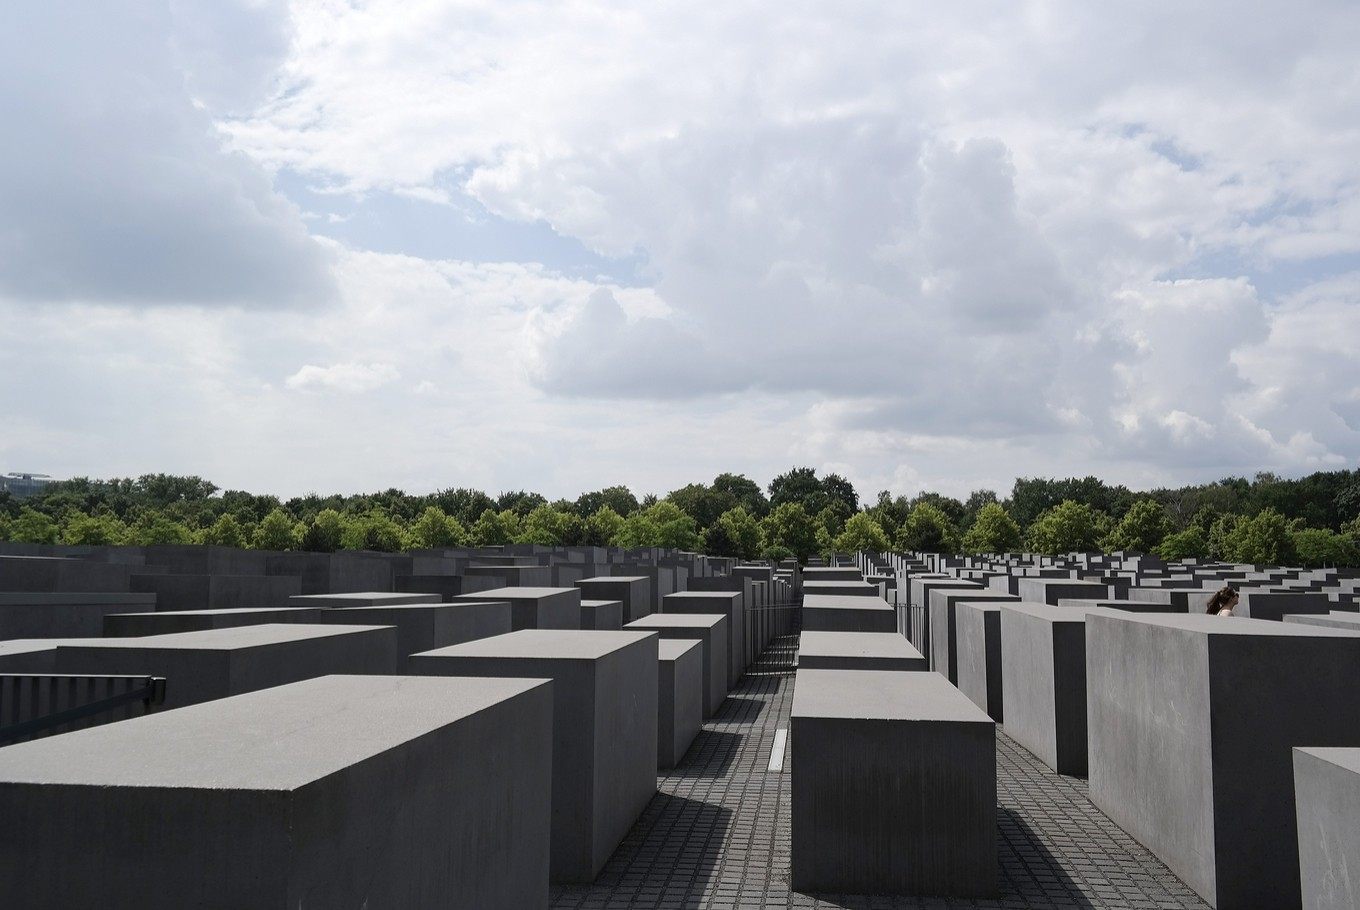 Facebook must adhere to German Holocaust denial laws, says Berlin